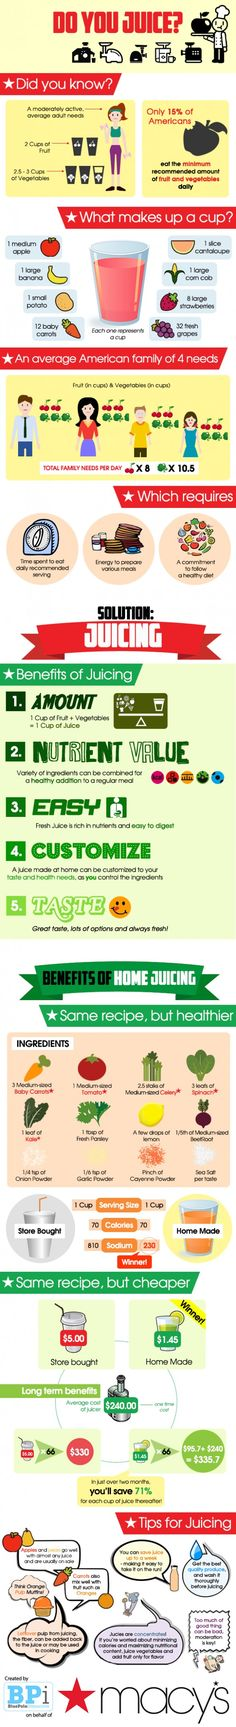 Do You Juice? [infographic]